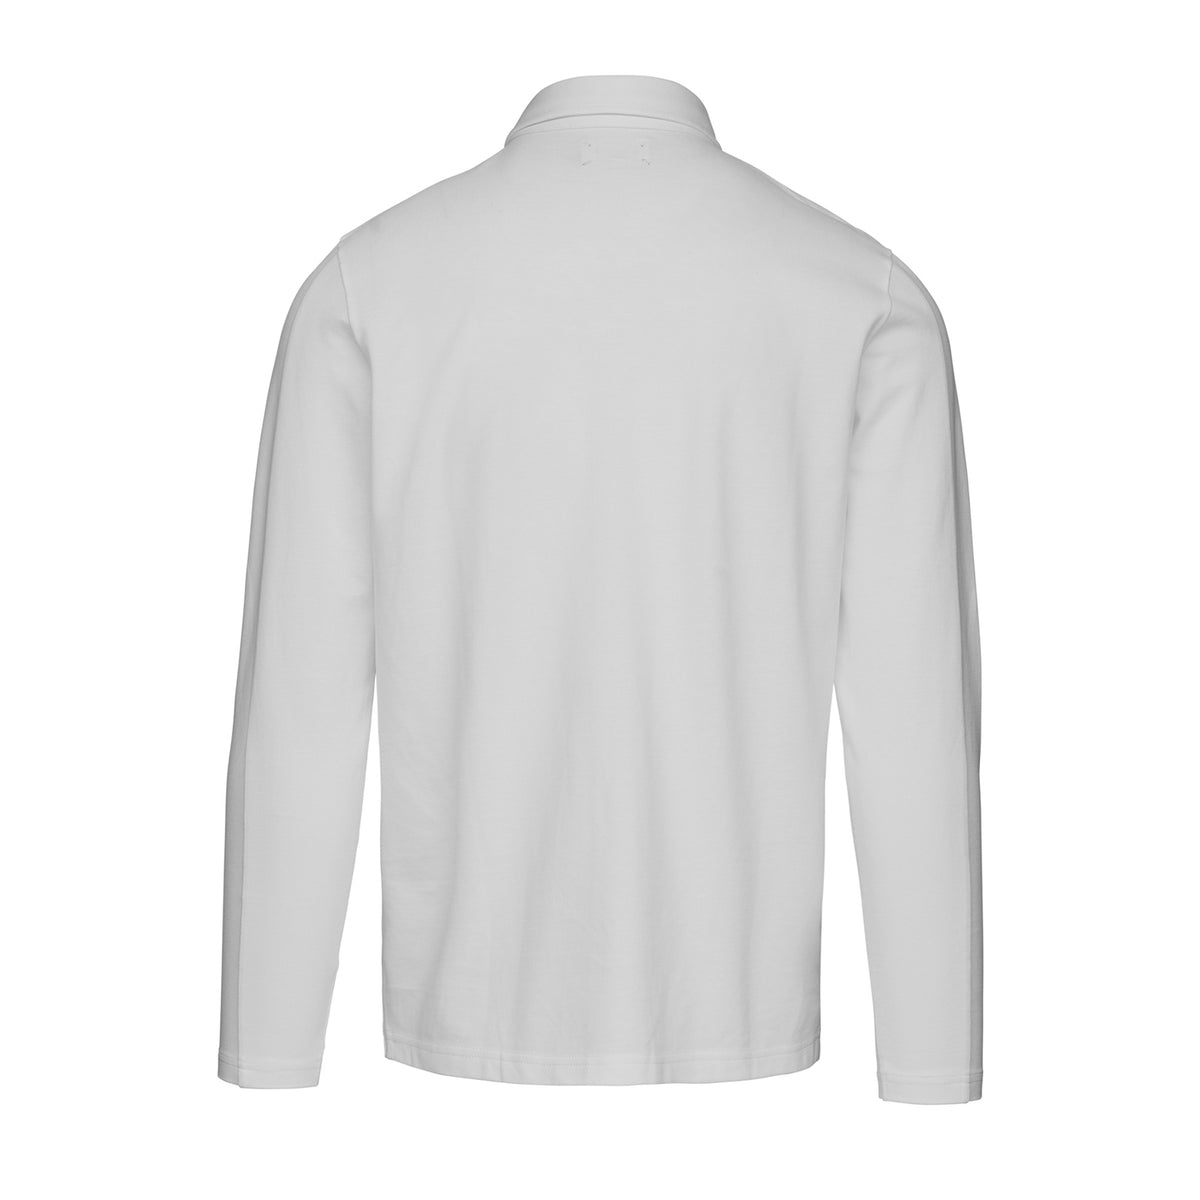 Breeze Jersey Shirt - background::white,variant::Alloy